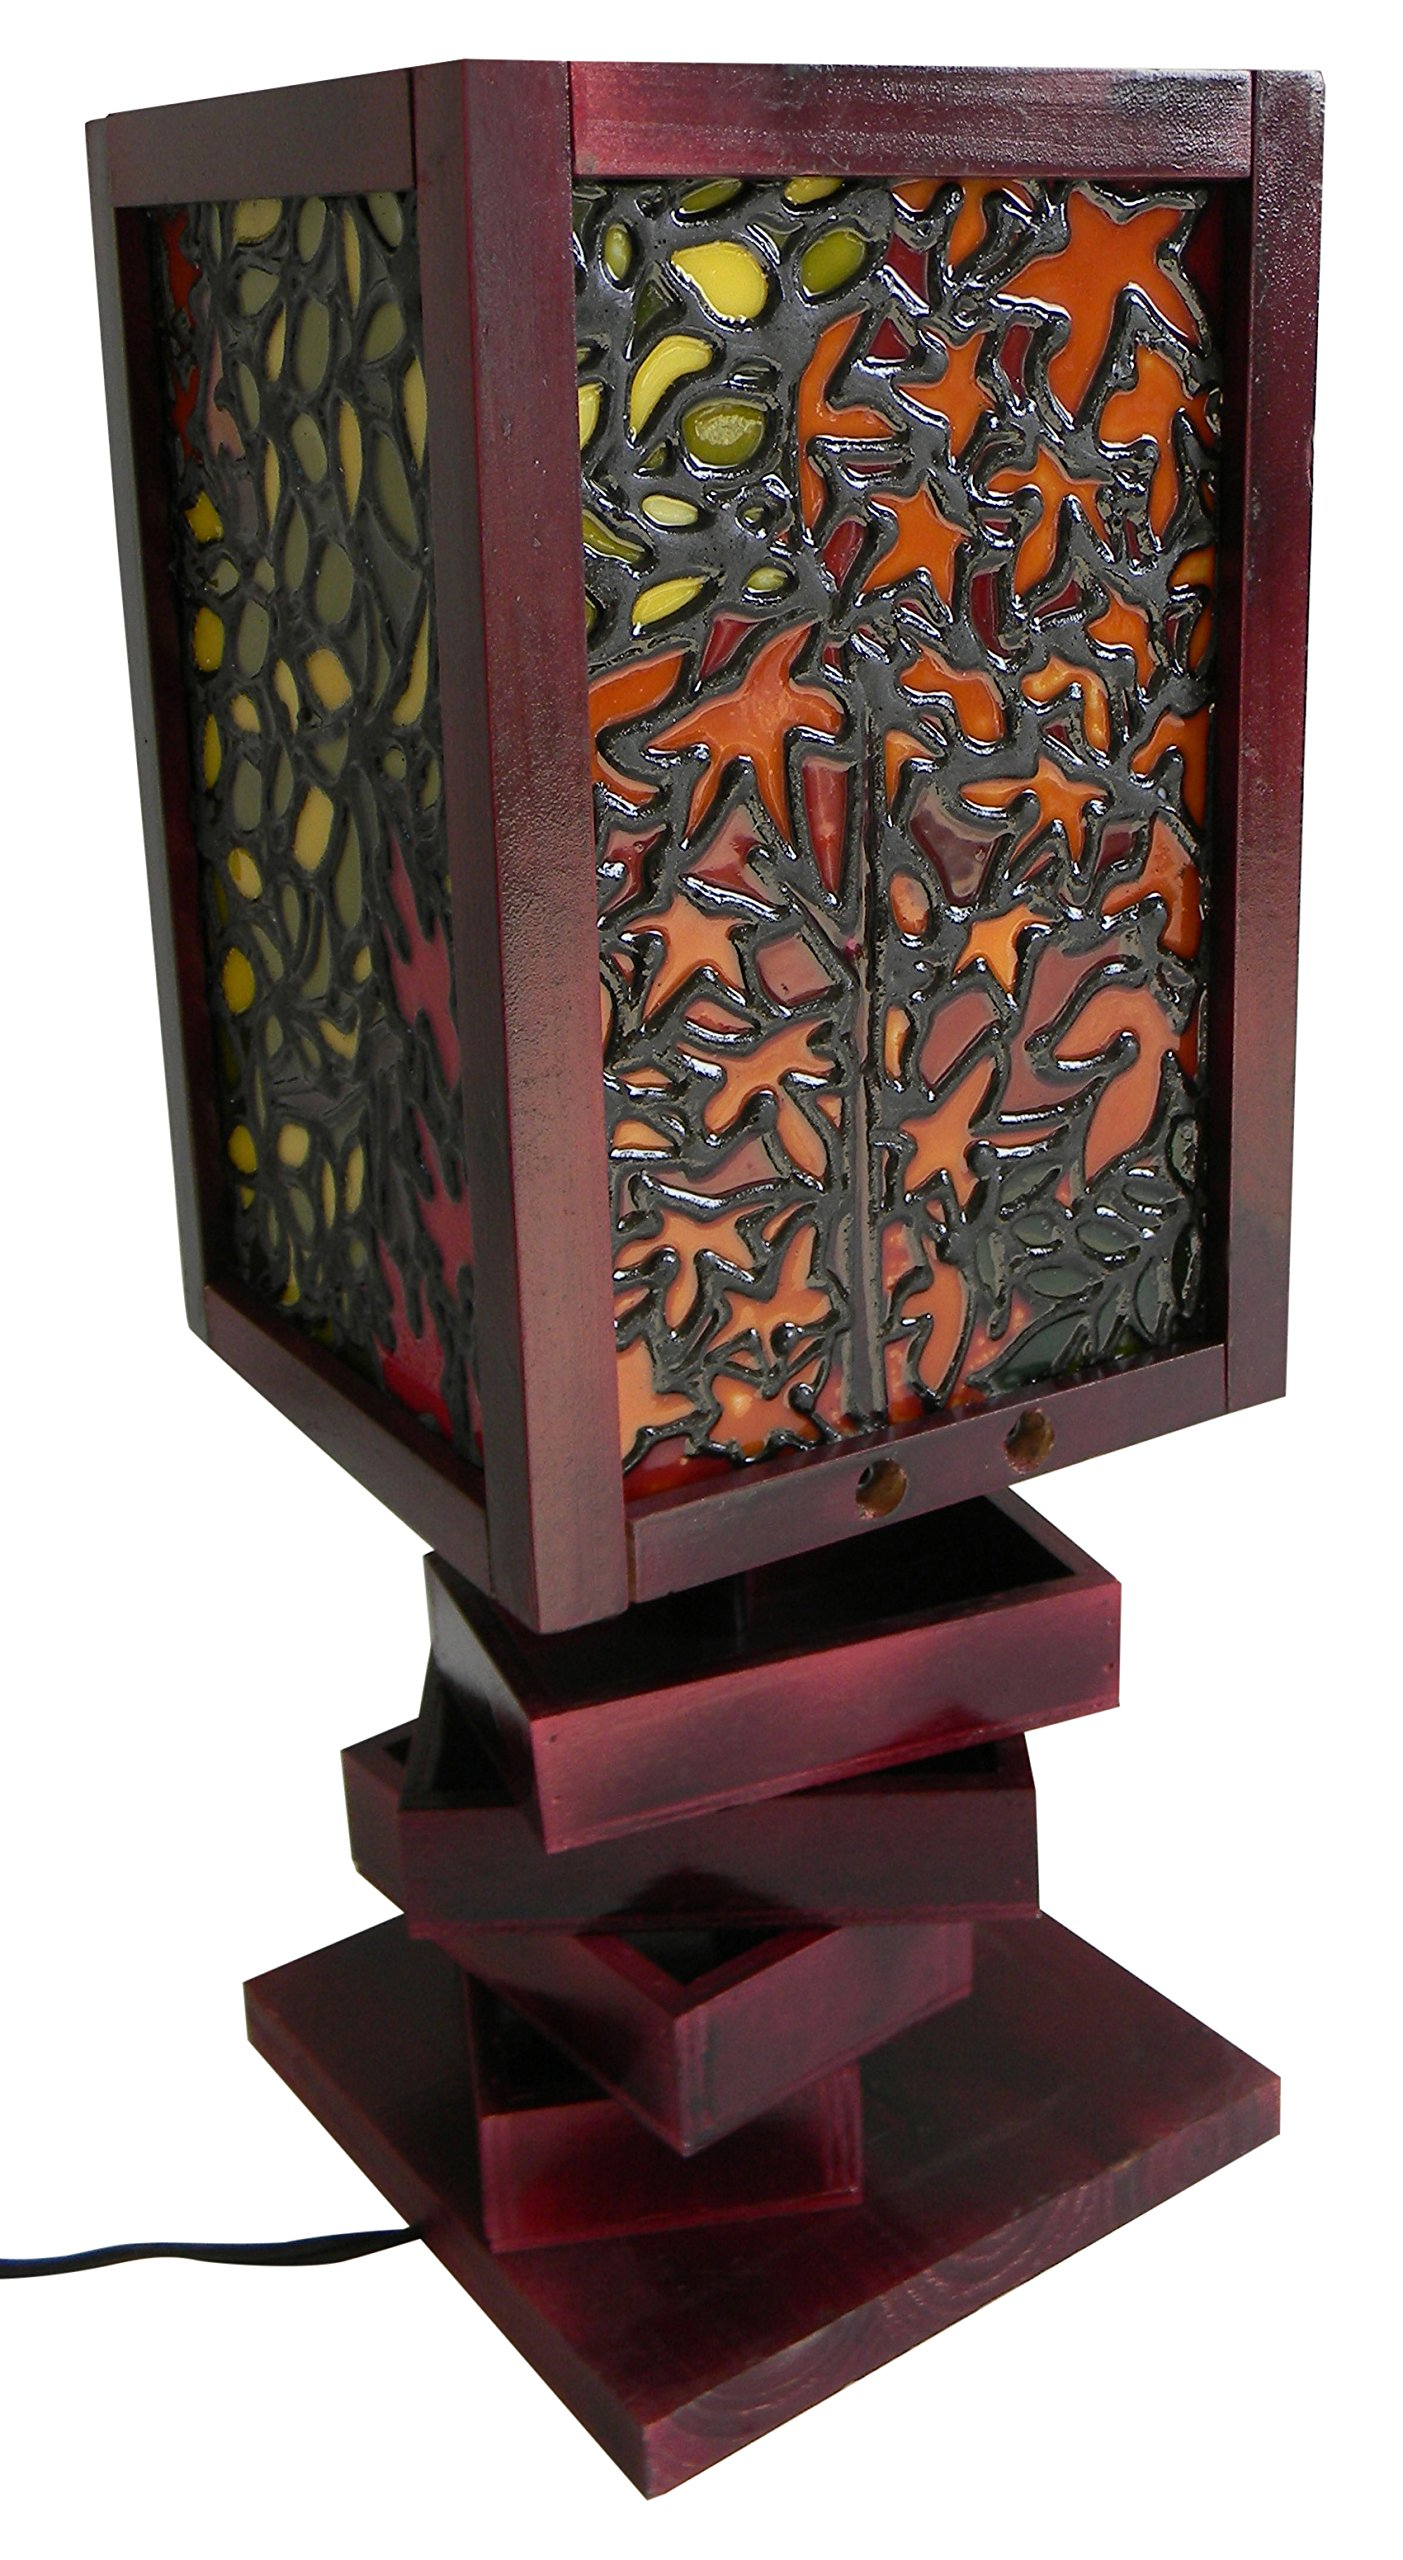 TIFFARTY 7-7/8 x 20'' Stained Glass Style Falling Leaves Table Lamp with 3 Turning Storage, Small, Brown